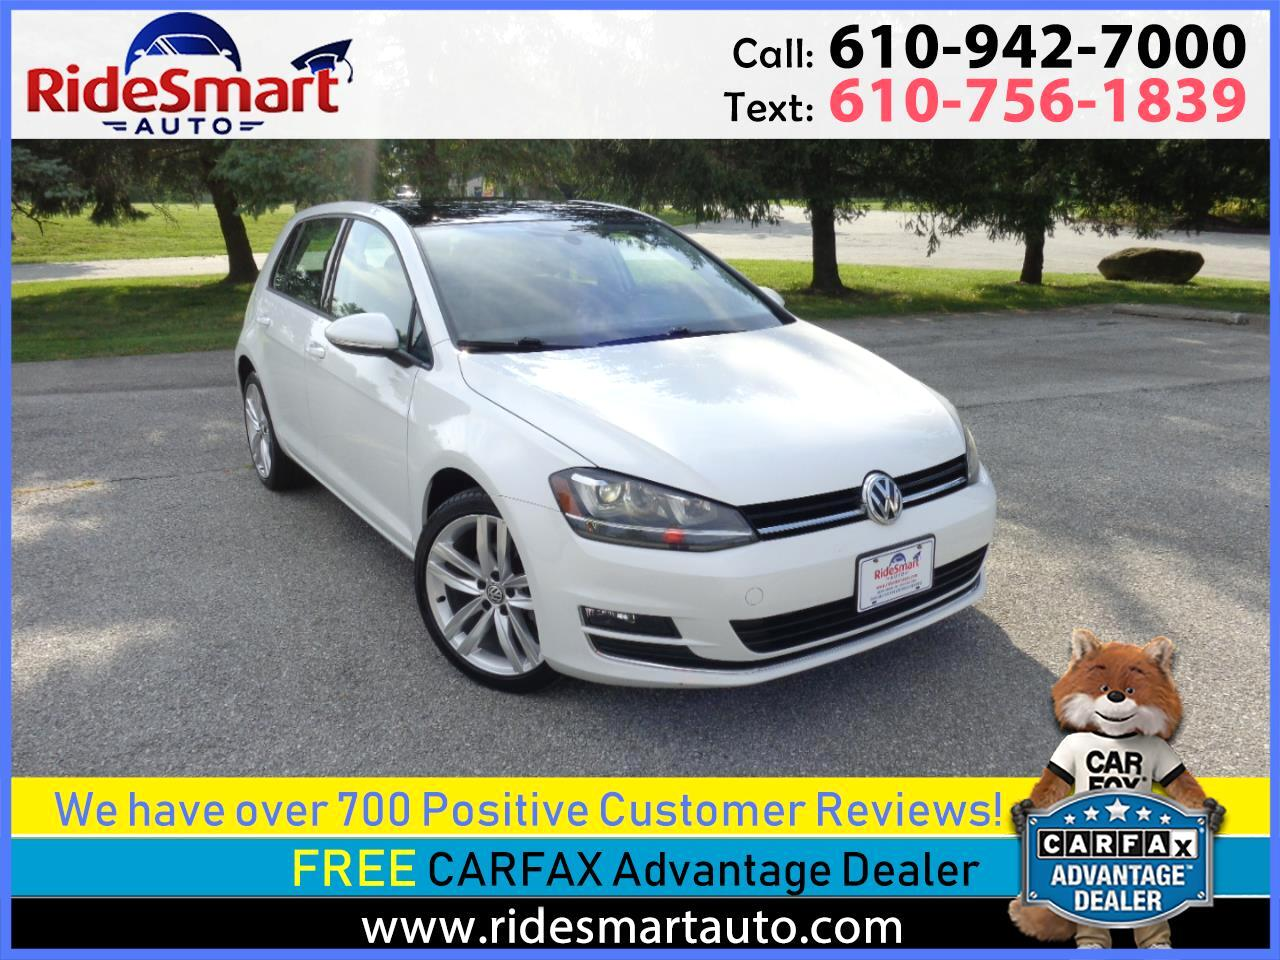 2015 Volkswagen Golf TDi SEL Navigation-Pano Sunroof-Rear Camera